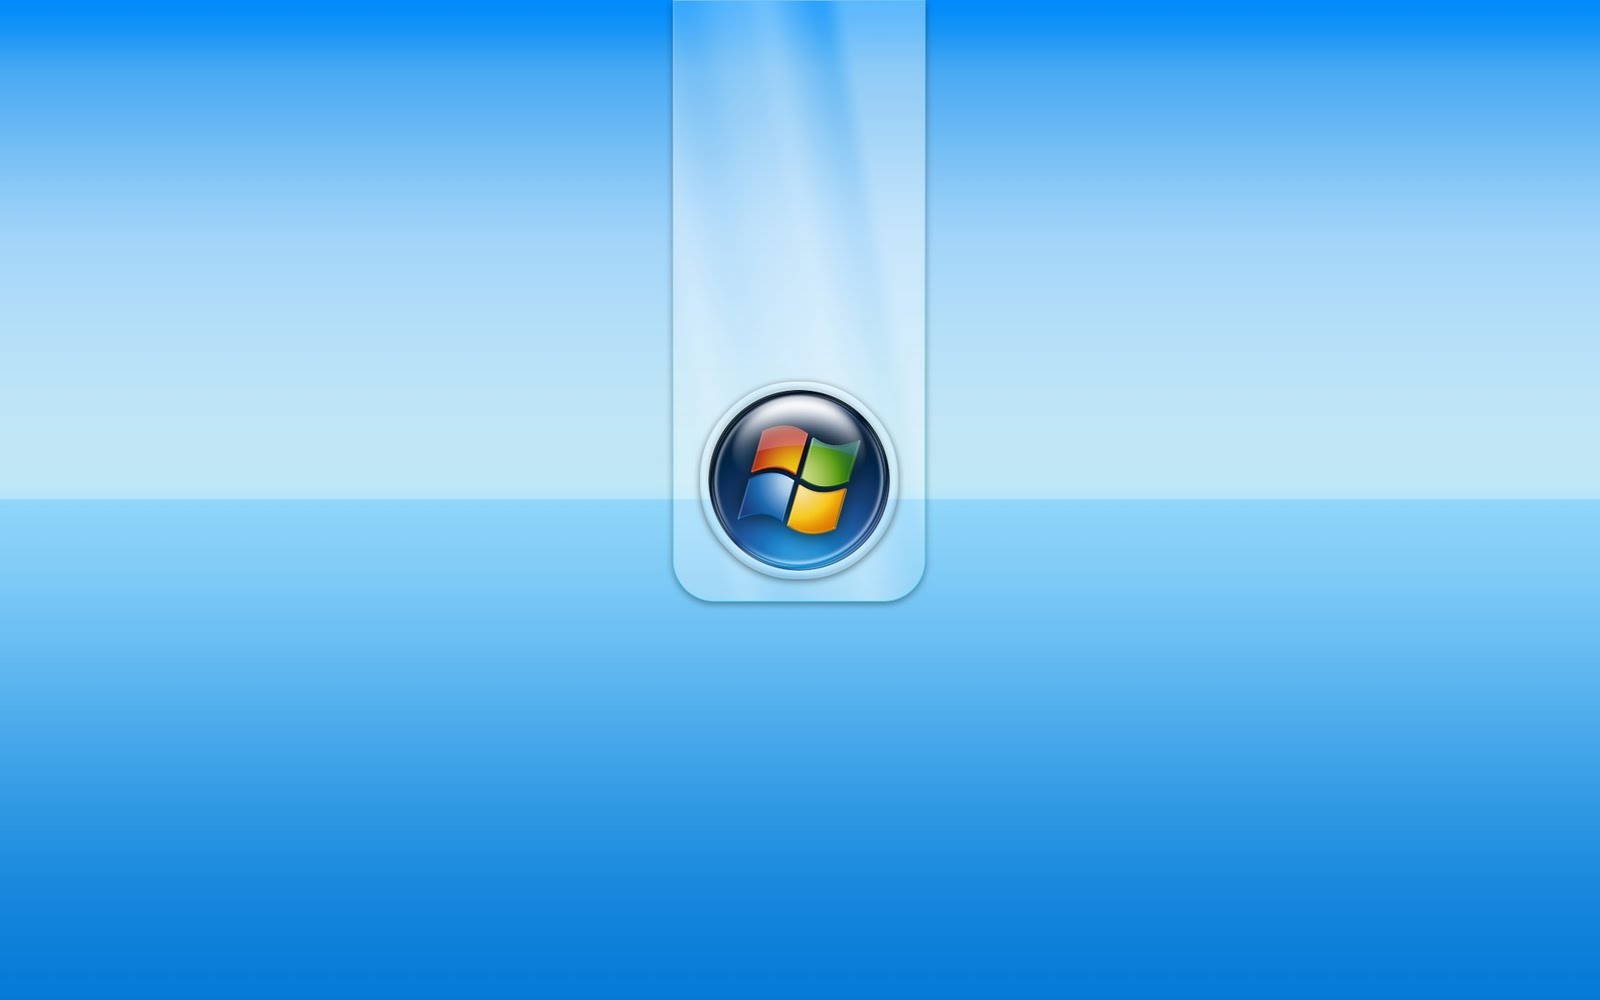 apple desktop wallpaper windows 7 - photo #8